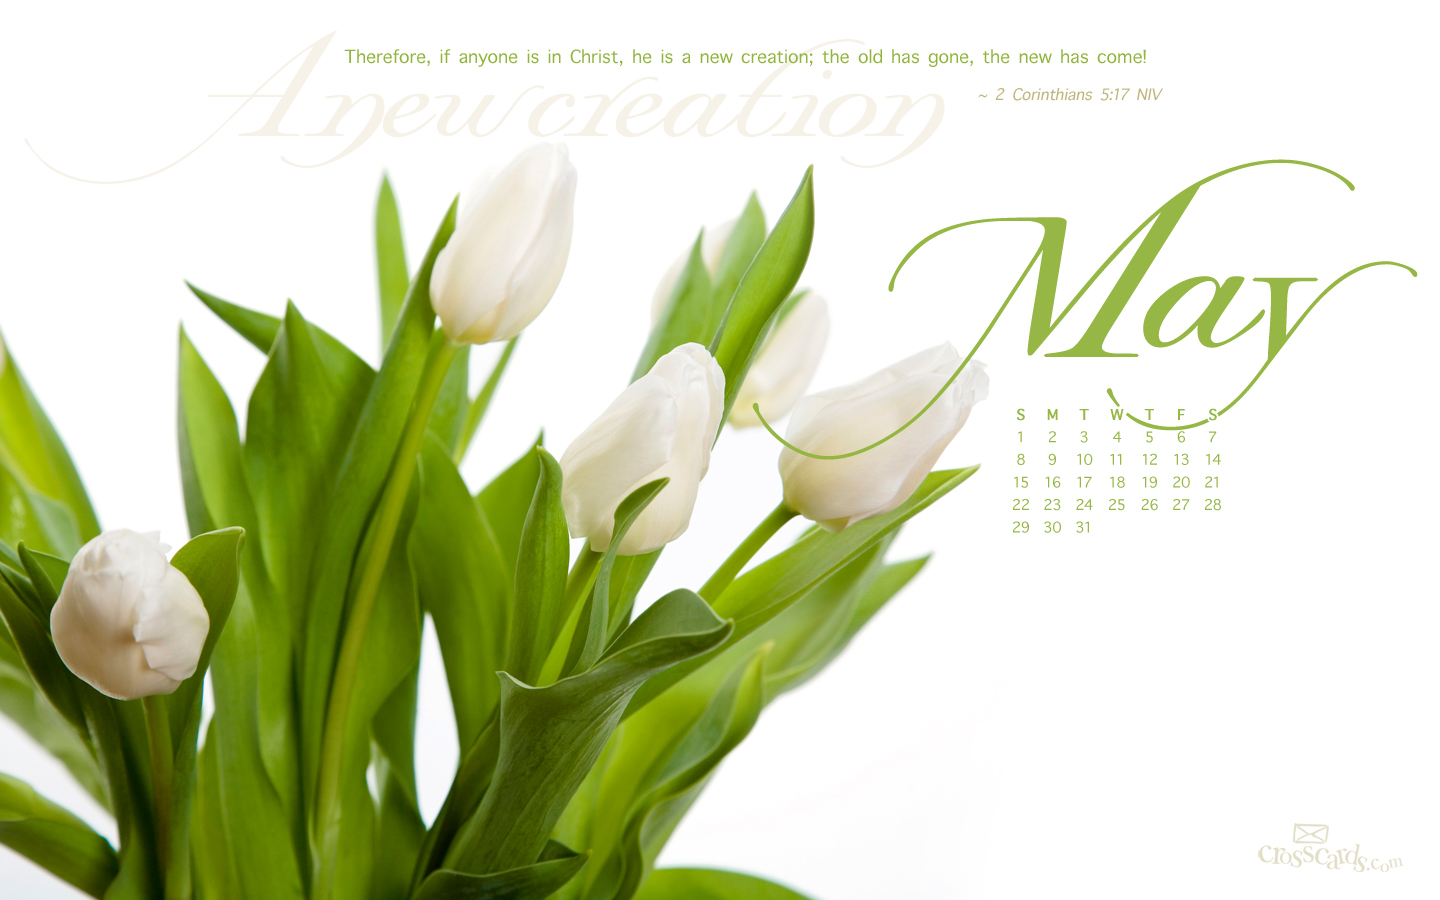 URL httpwwwcrosscardscoukwallpapermonthly calendarsmayp2 1440x900